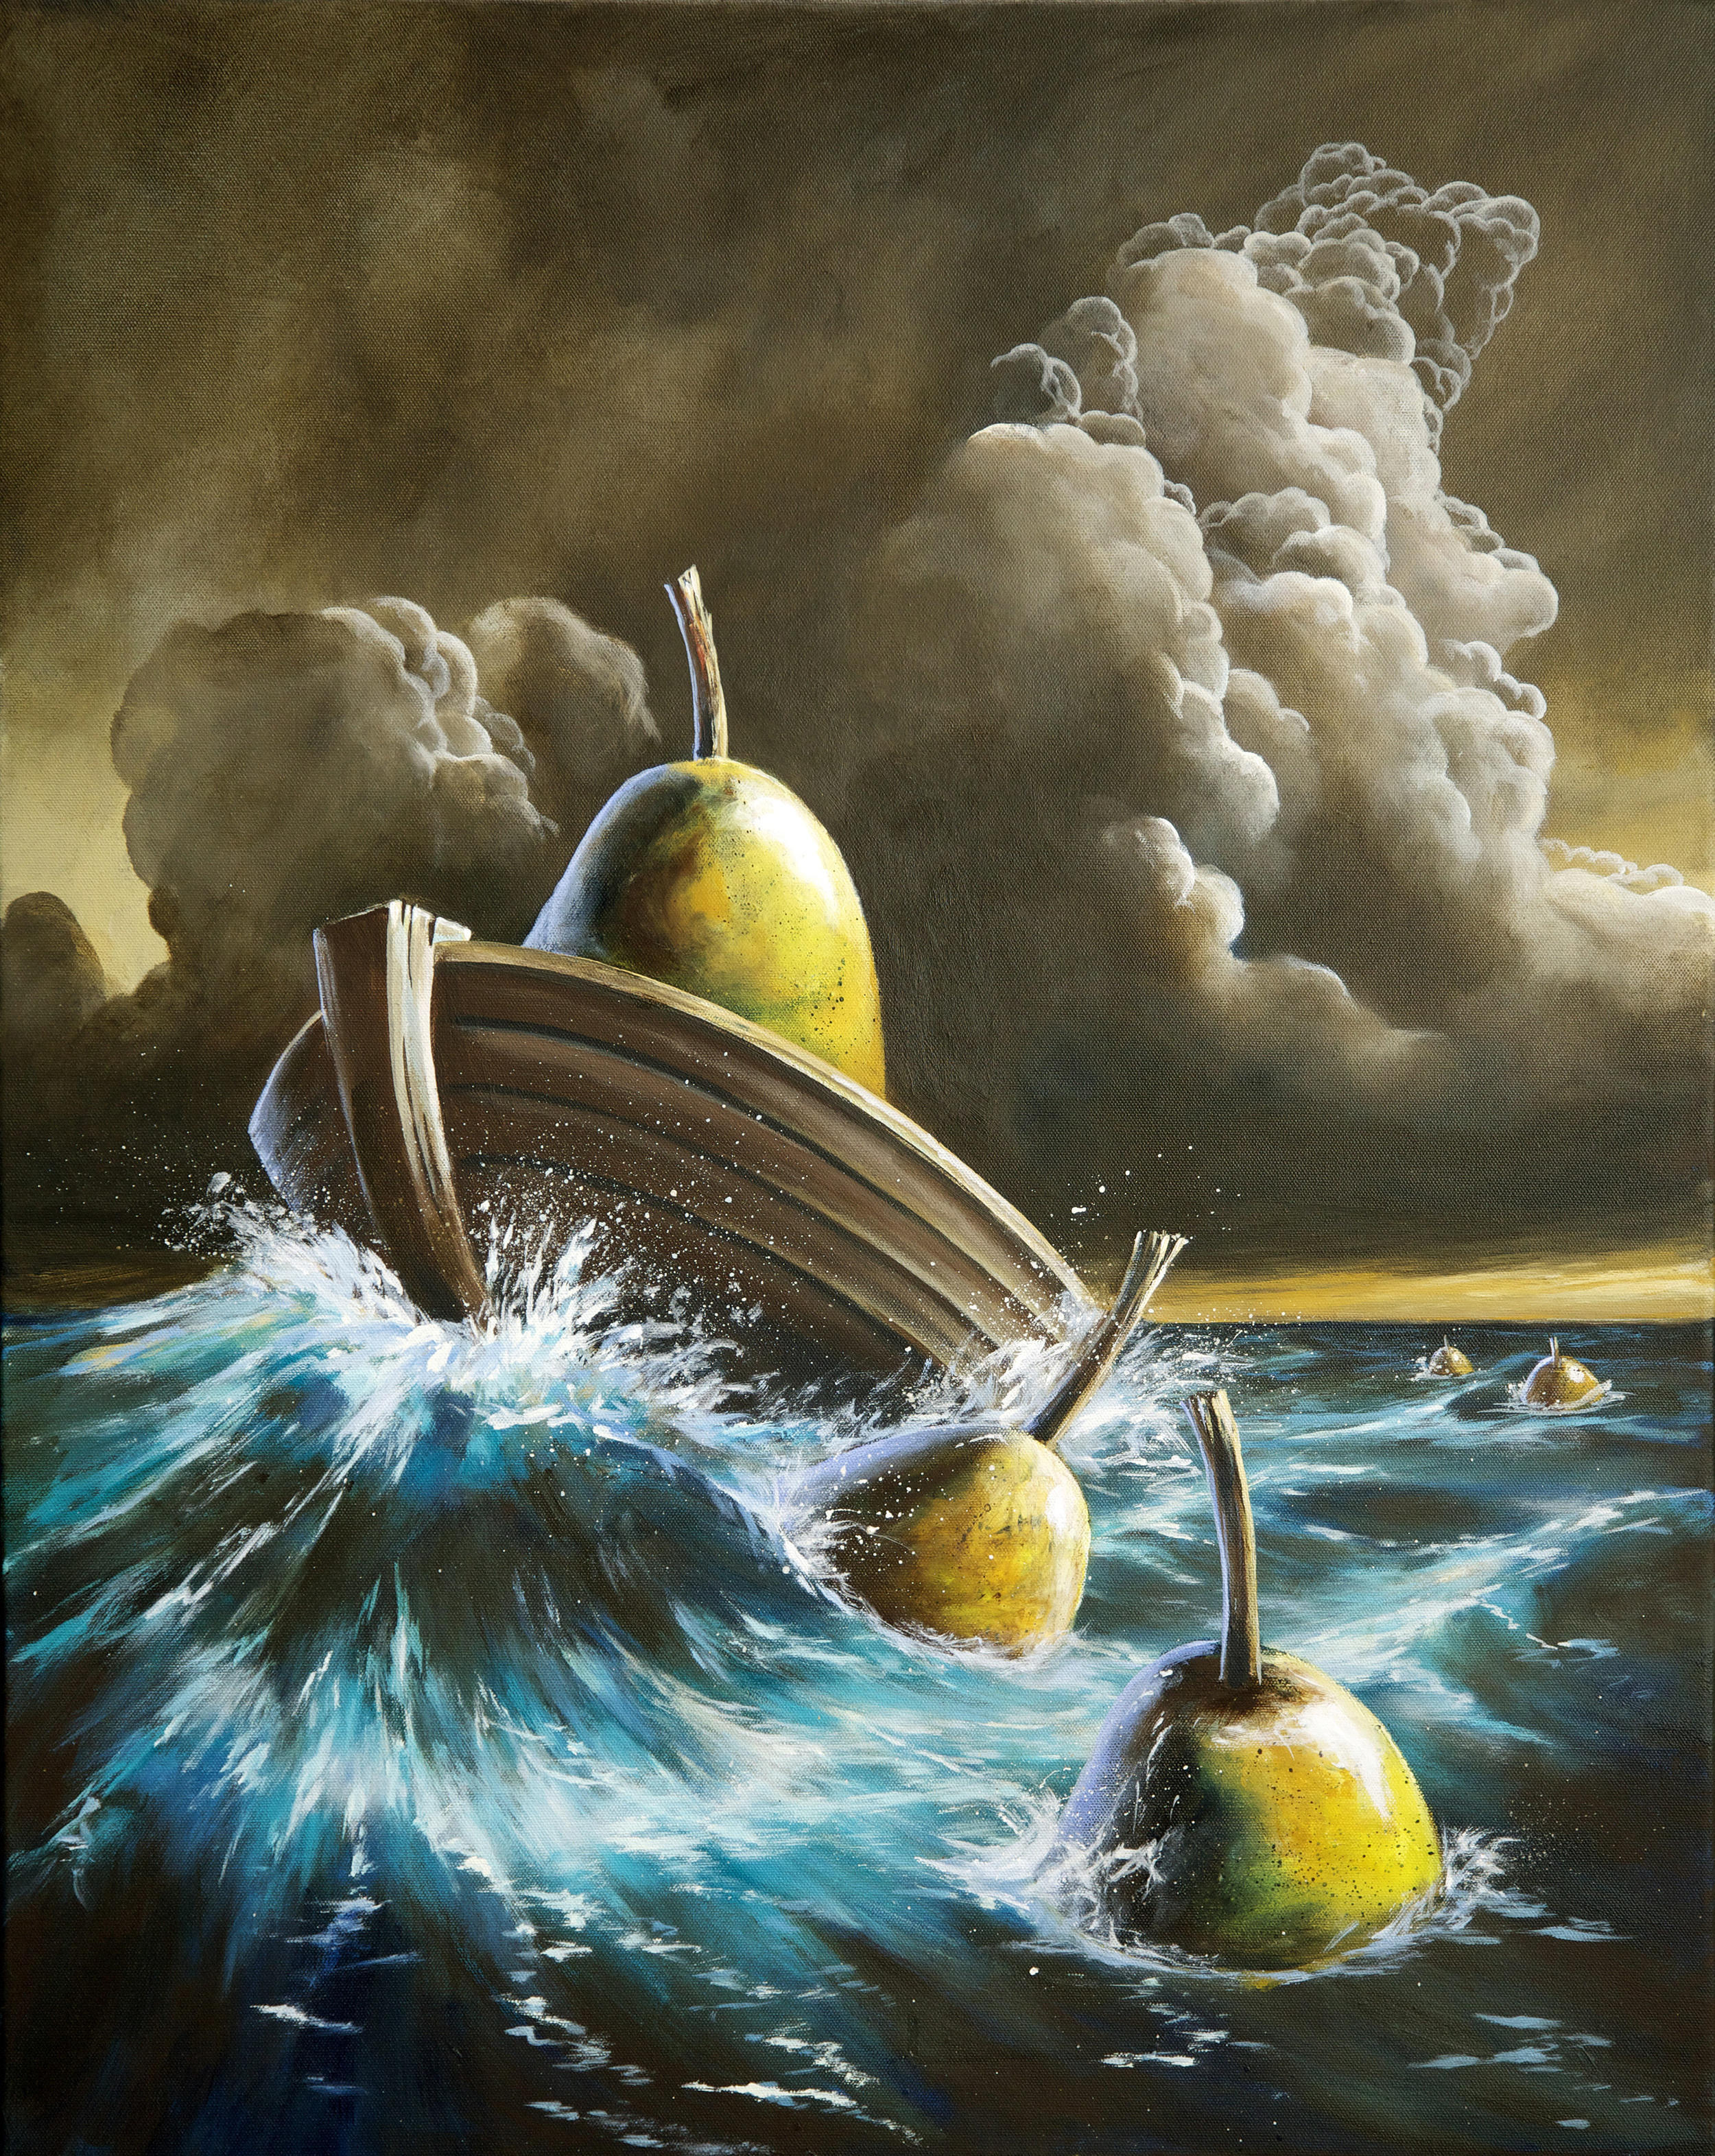 bill_higginson_the-pearilous-ocean-surrealism_painting-acrylic-painting-pears-fruit-canvas